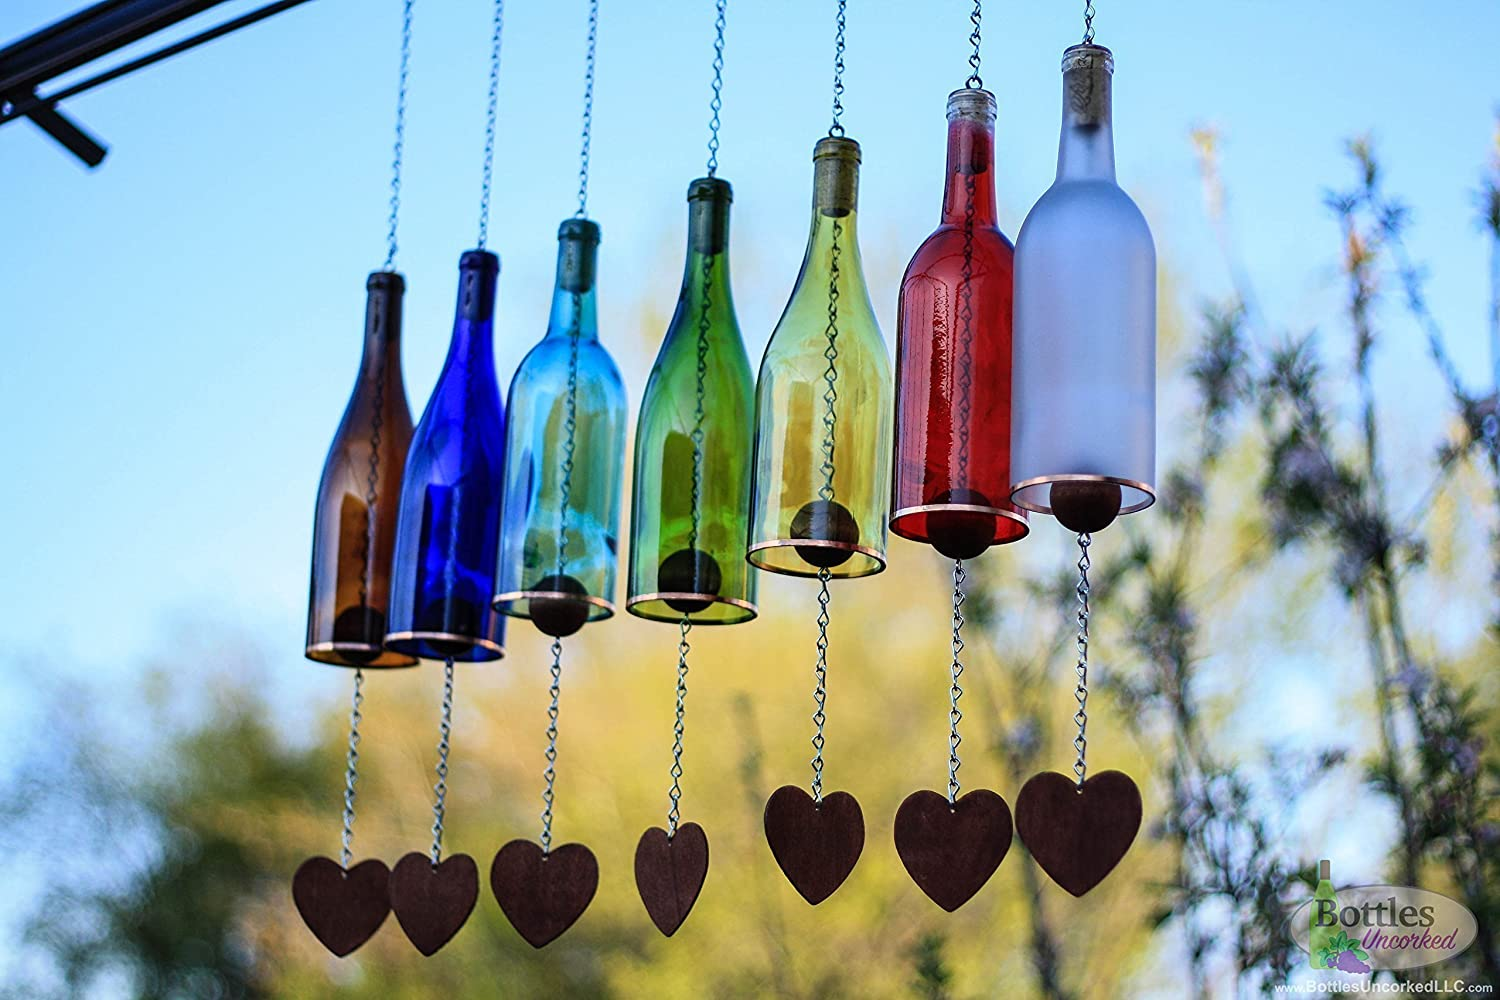 Forum on this topic: How to Make Wine Bottle Wind Chime, how-to-make-wine-bottle-wind-chime/